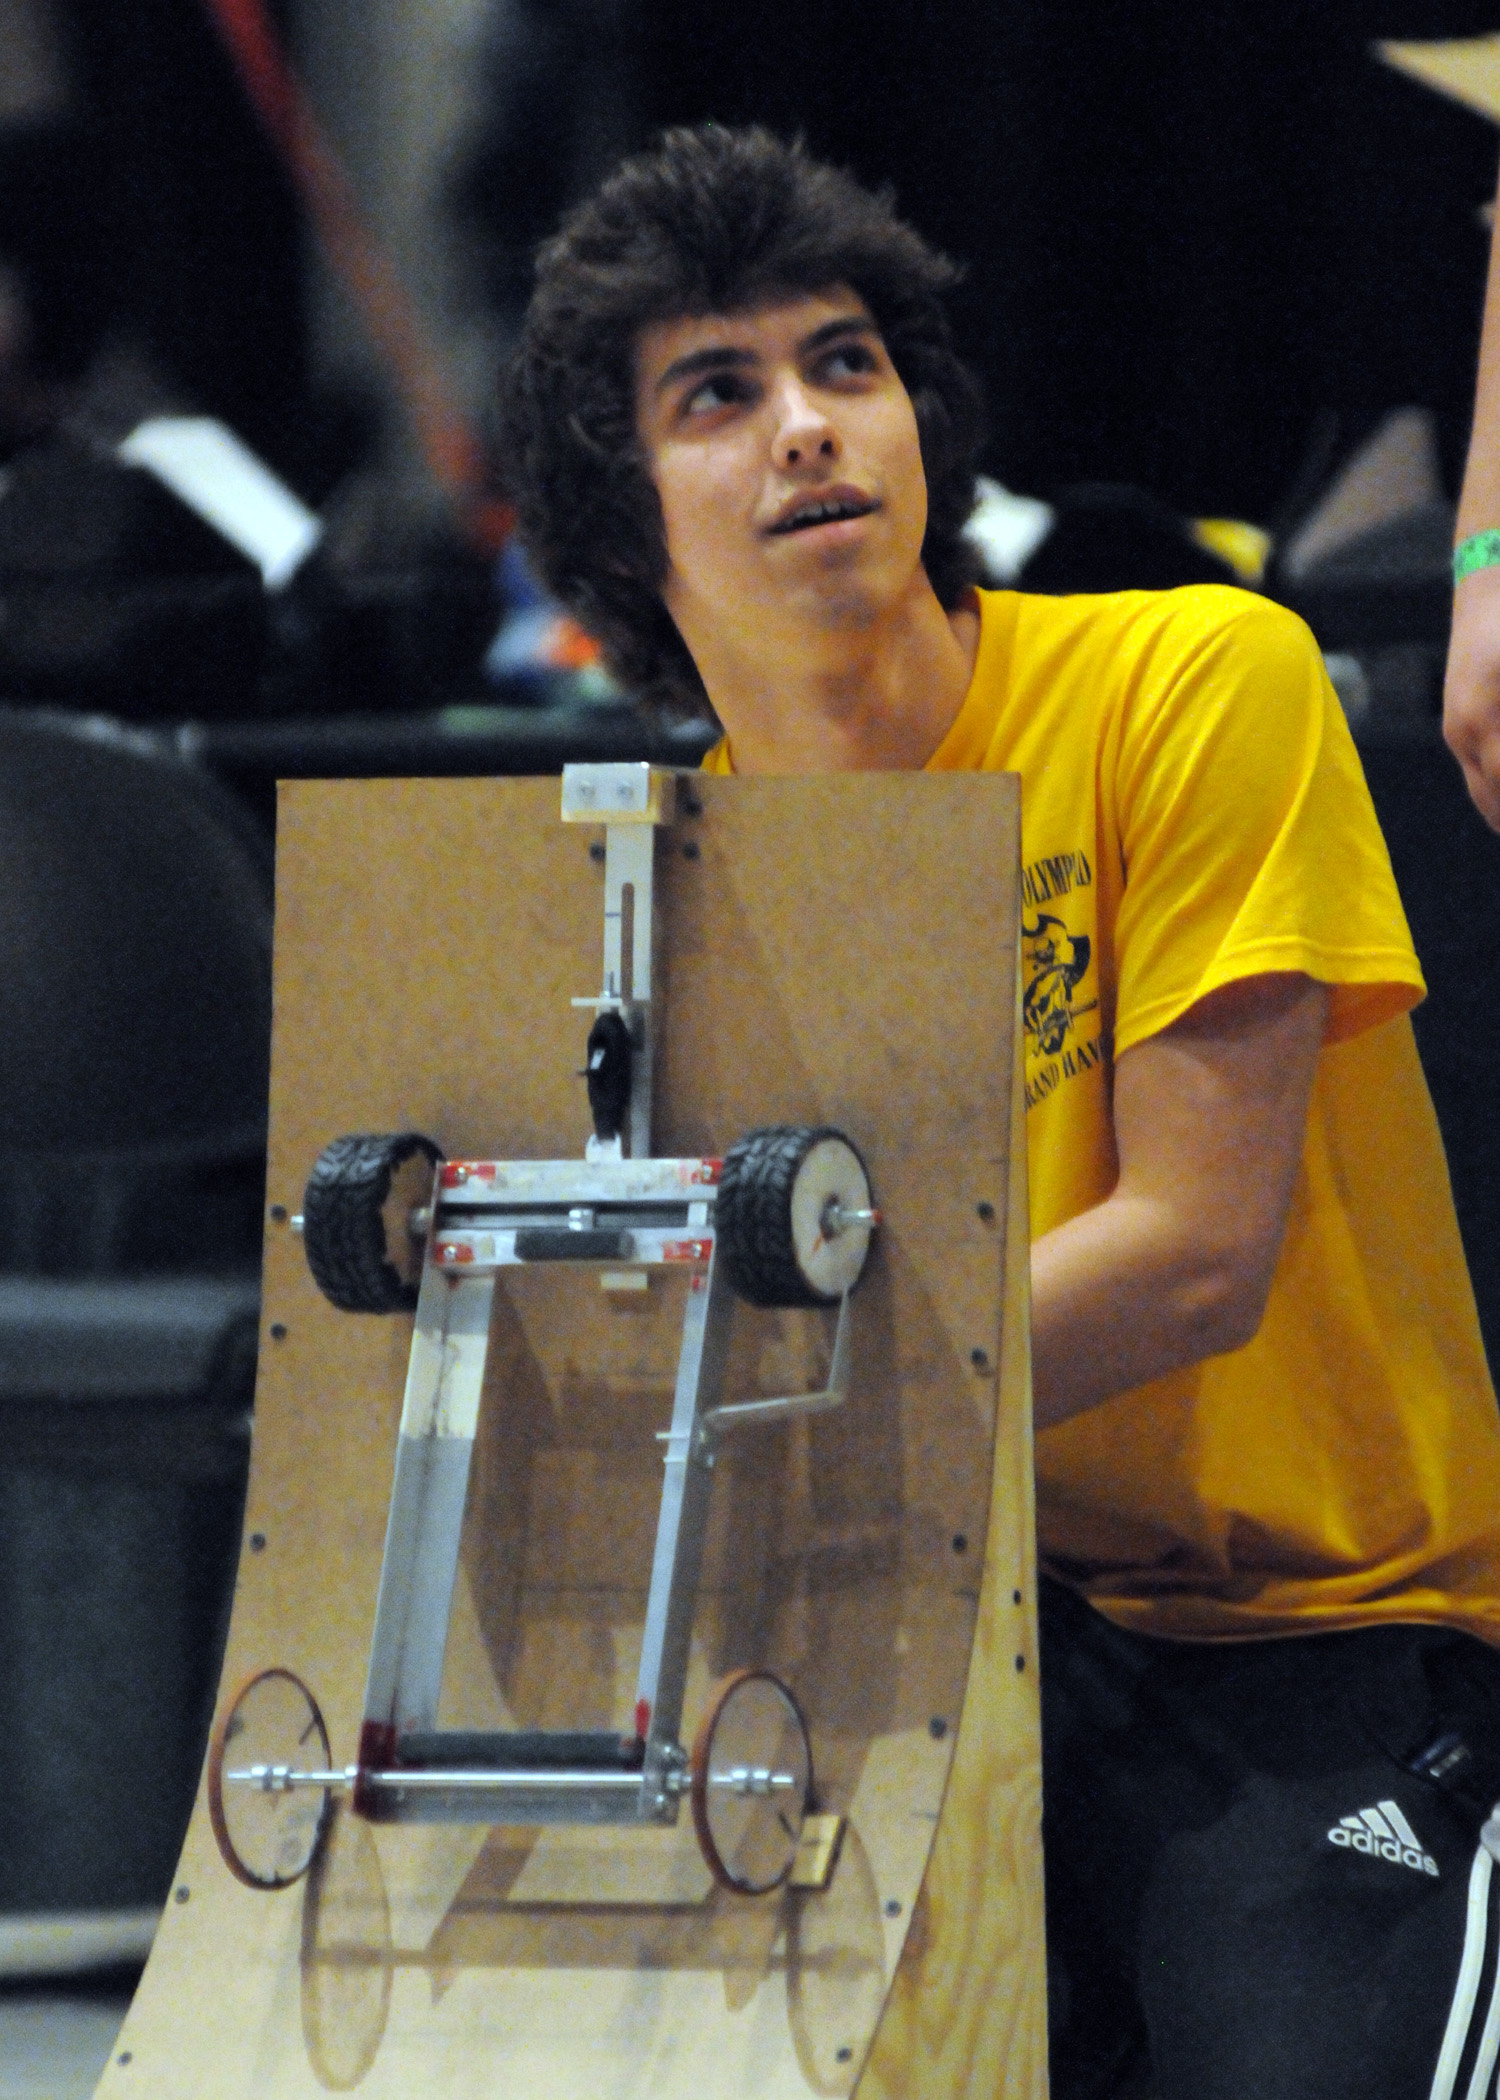 A student from Grand Haven HS in Michigan competes in Gravity Vehicle at the 2013 National Tournament